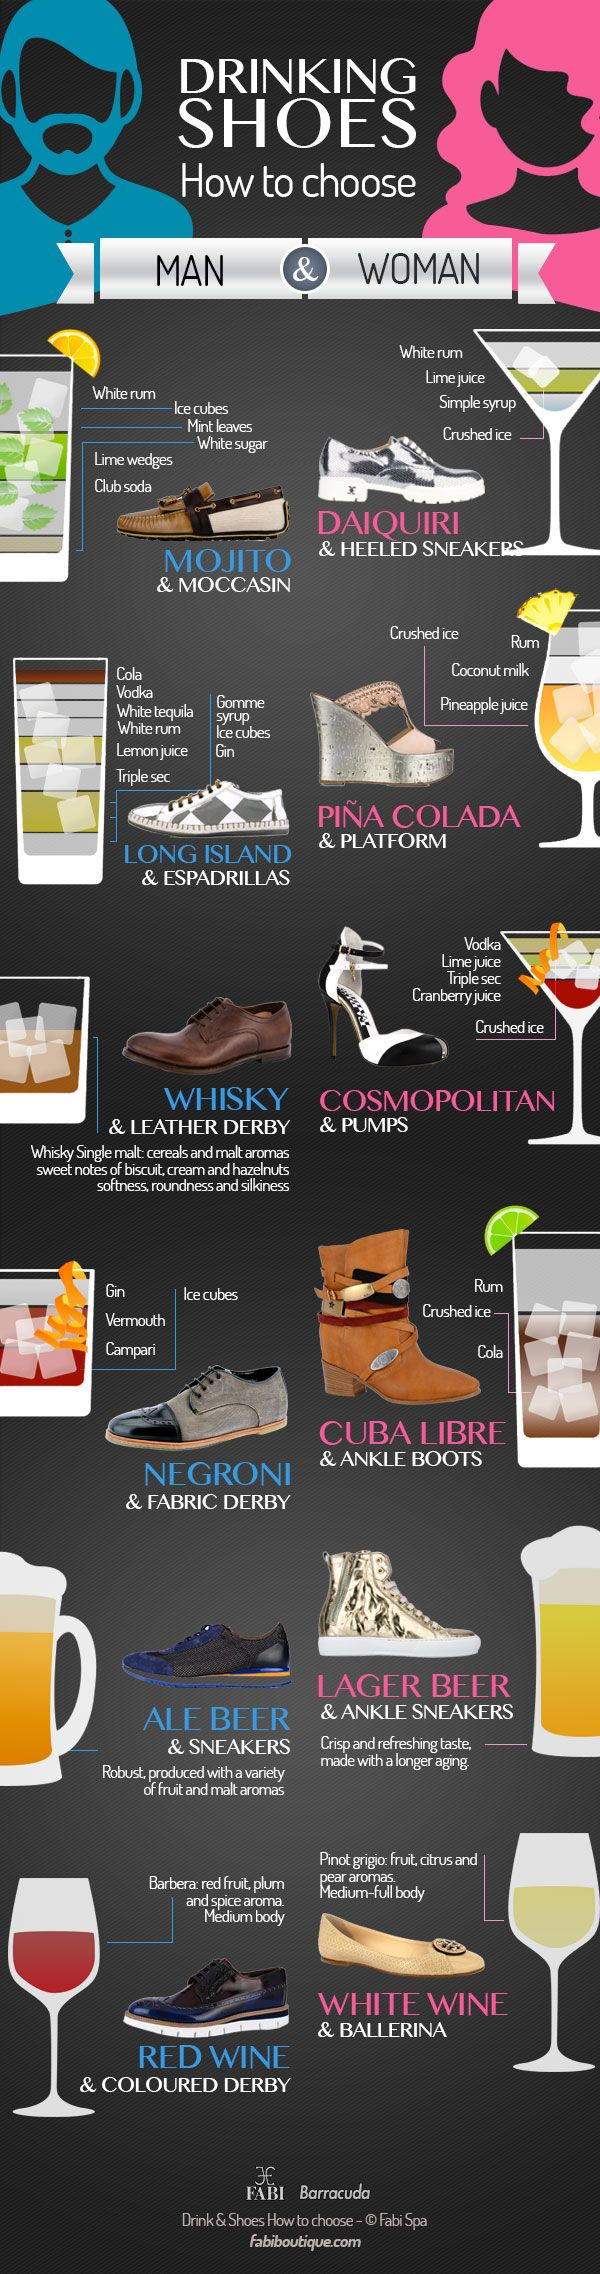 Drinking shoes: how to choose  #shoes #summer #cocktail #lifestyle #party #partytime #estate #boots #pumps #wedges #fashion @fabishoes